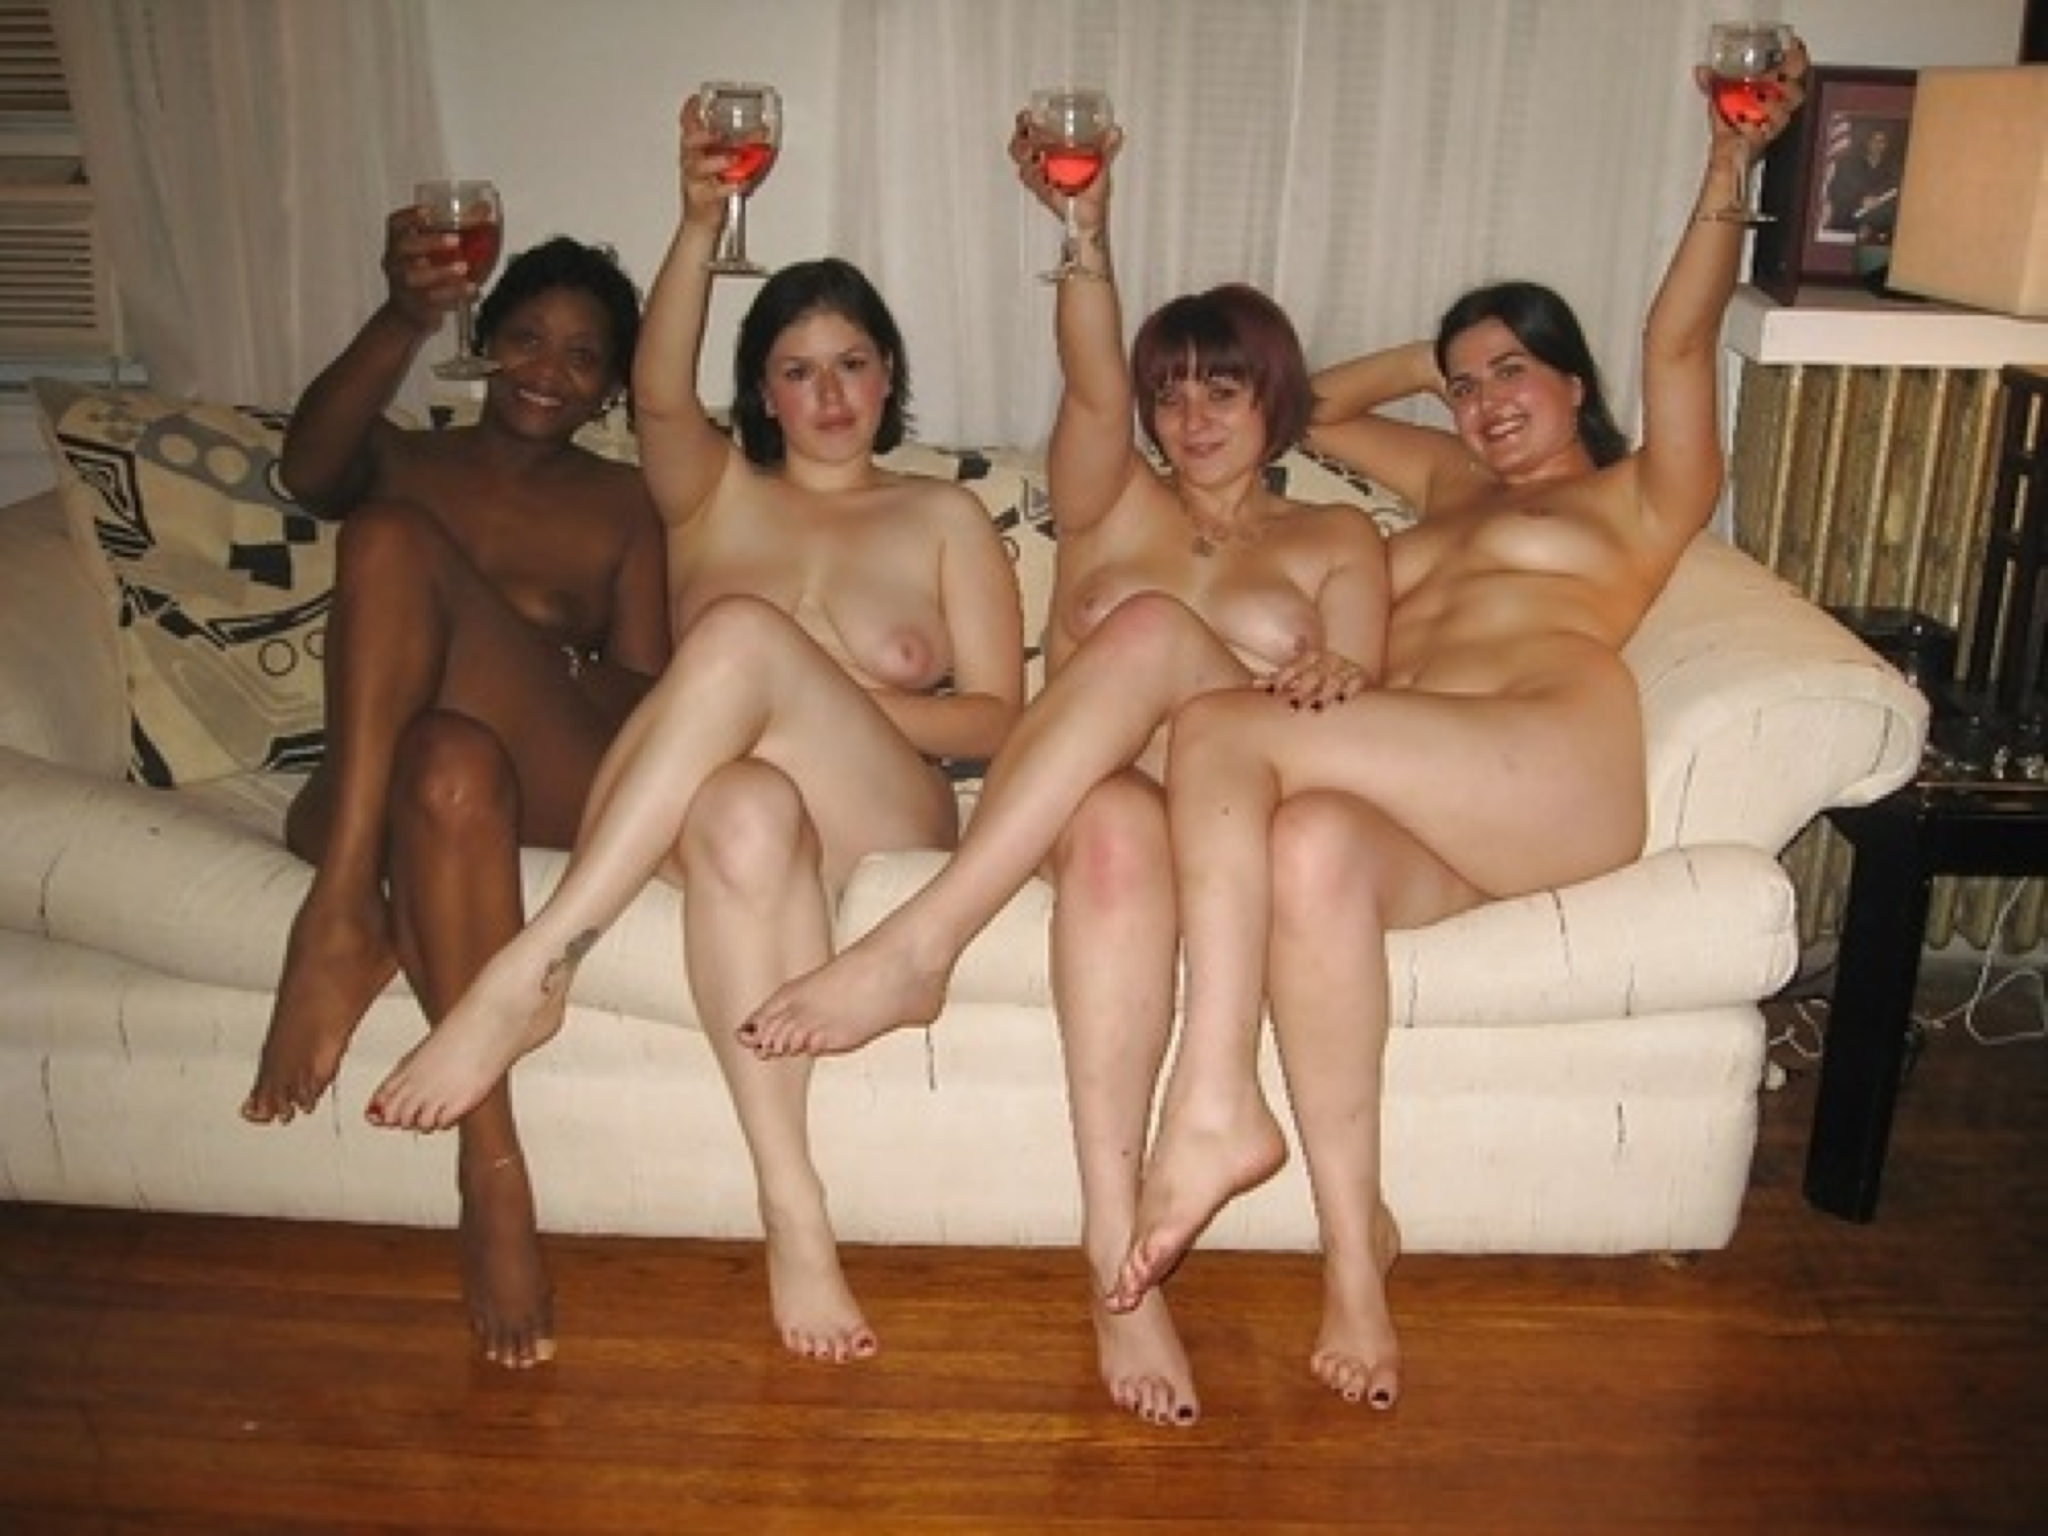 Share Naked family party